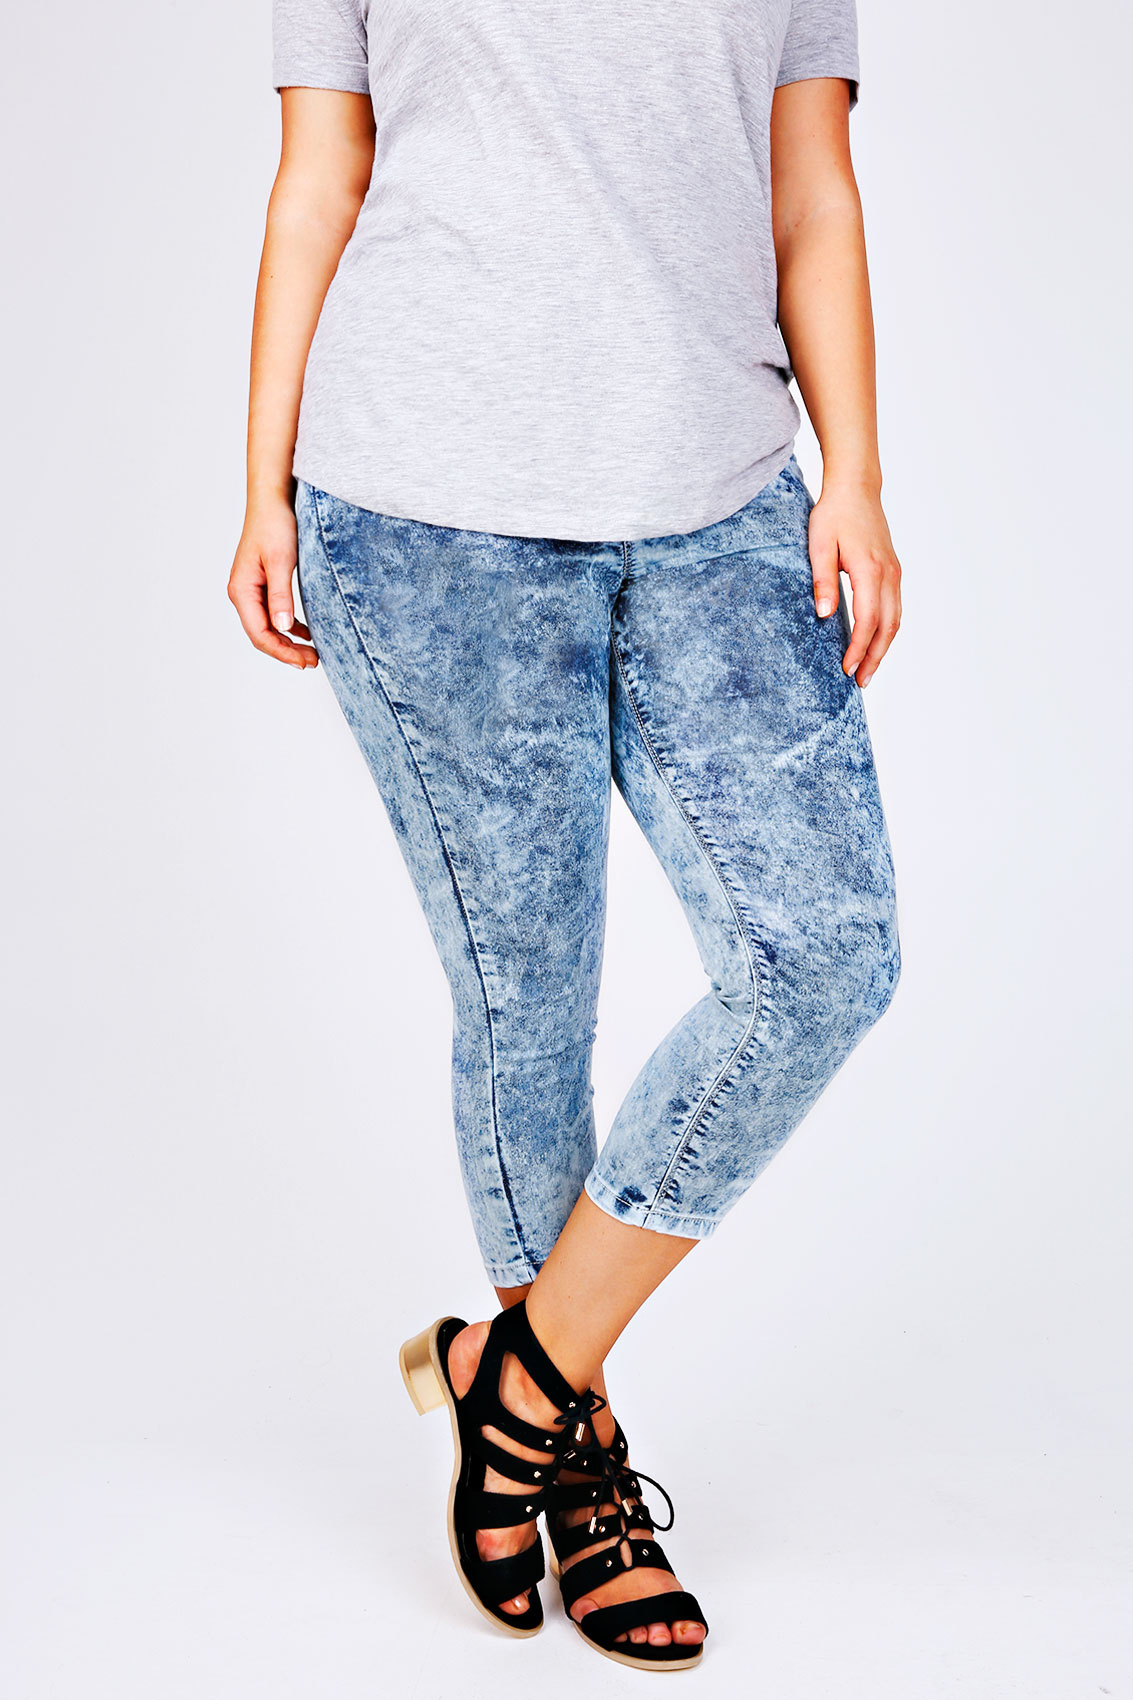 Fit & Fashion Notes: These jegging crops are made with extra stretch in the waistband and across the legs making them super comfortable for everyday casual wear. Wear with a longline vest and trainers for an active weekend look.